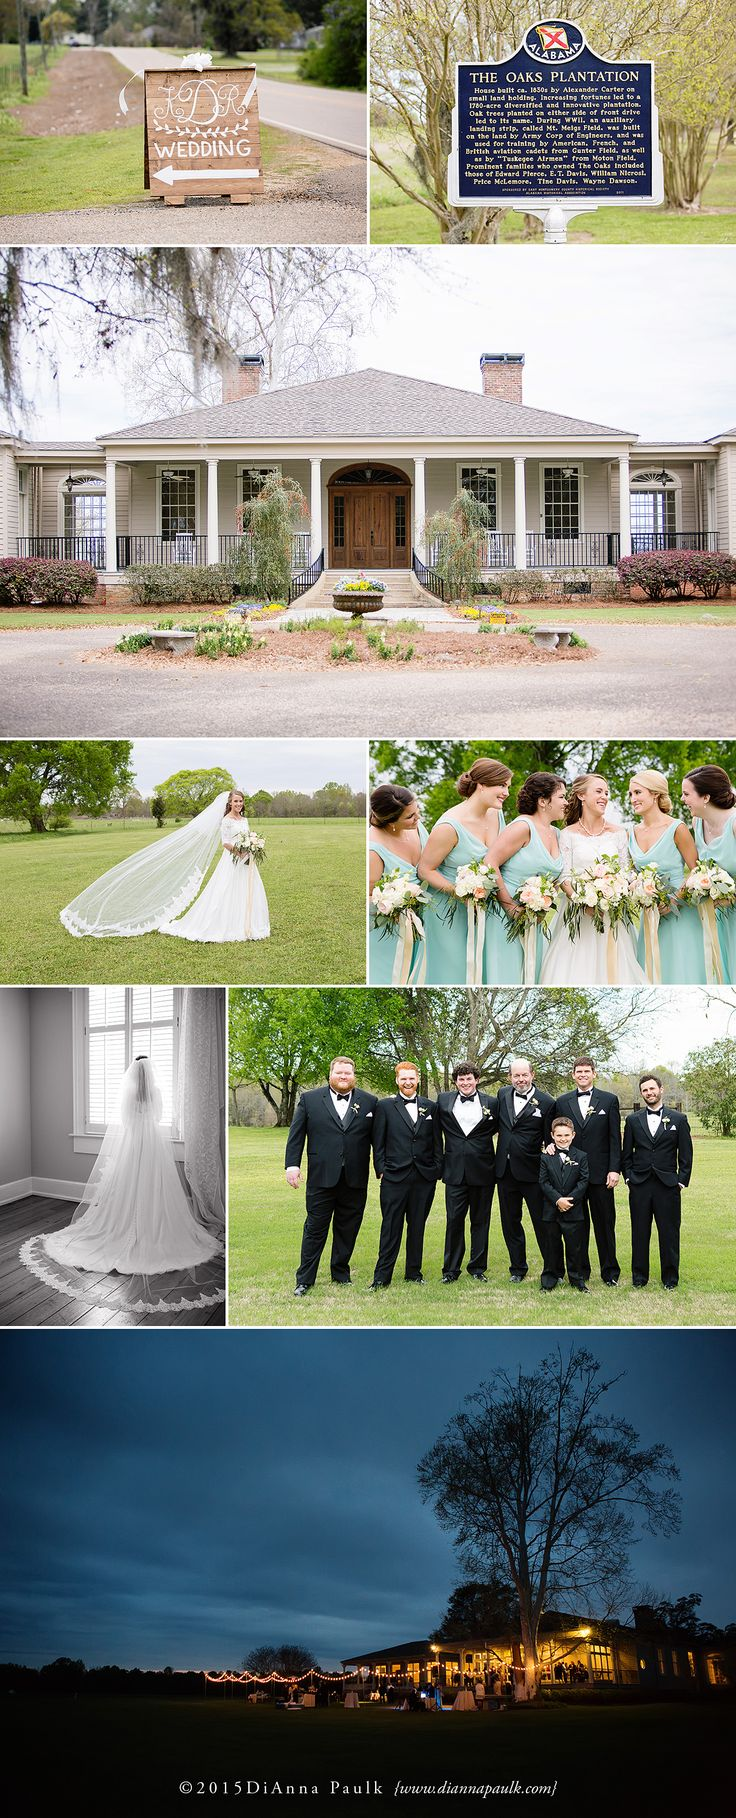 Wedding  Reception Venue The Oaks Plantation in Pike Road AL Photography by DiAnna Paulk a